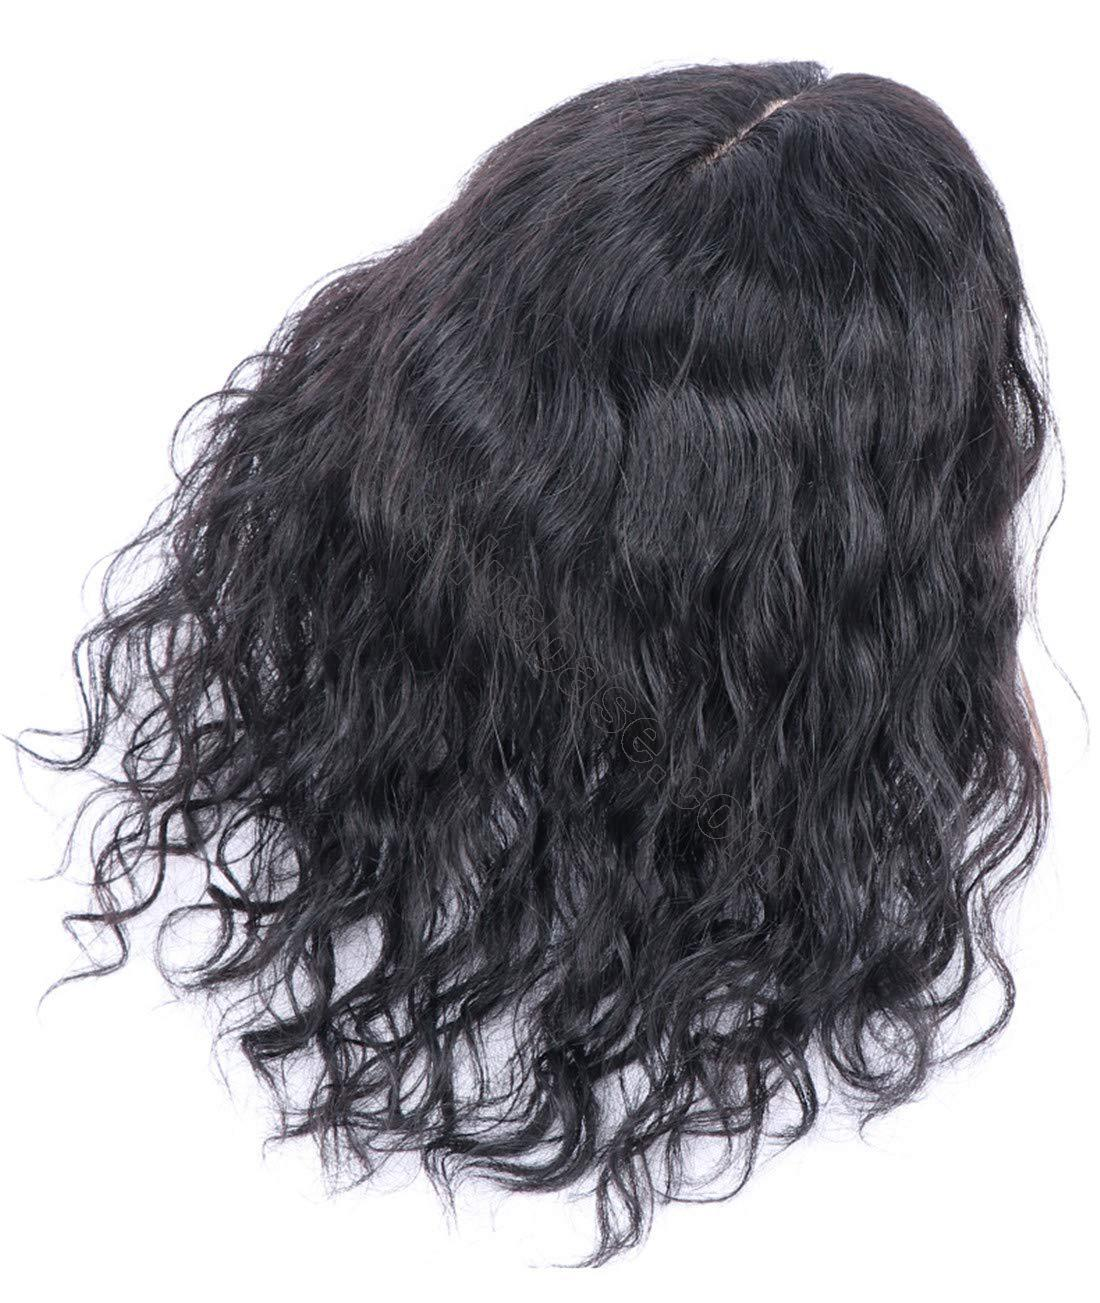 Curly Human Hair Topper Hair Thicken Hairpiece for Women with Thin Hair on Top, 5 Inchx5.5 Inch Silk Base 2